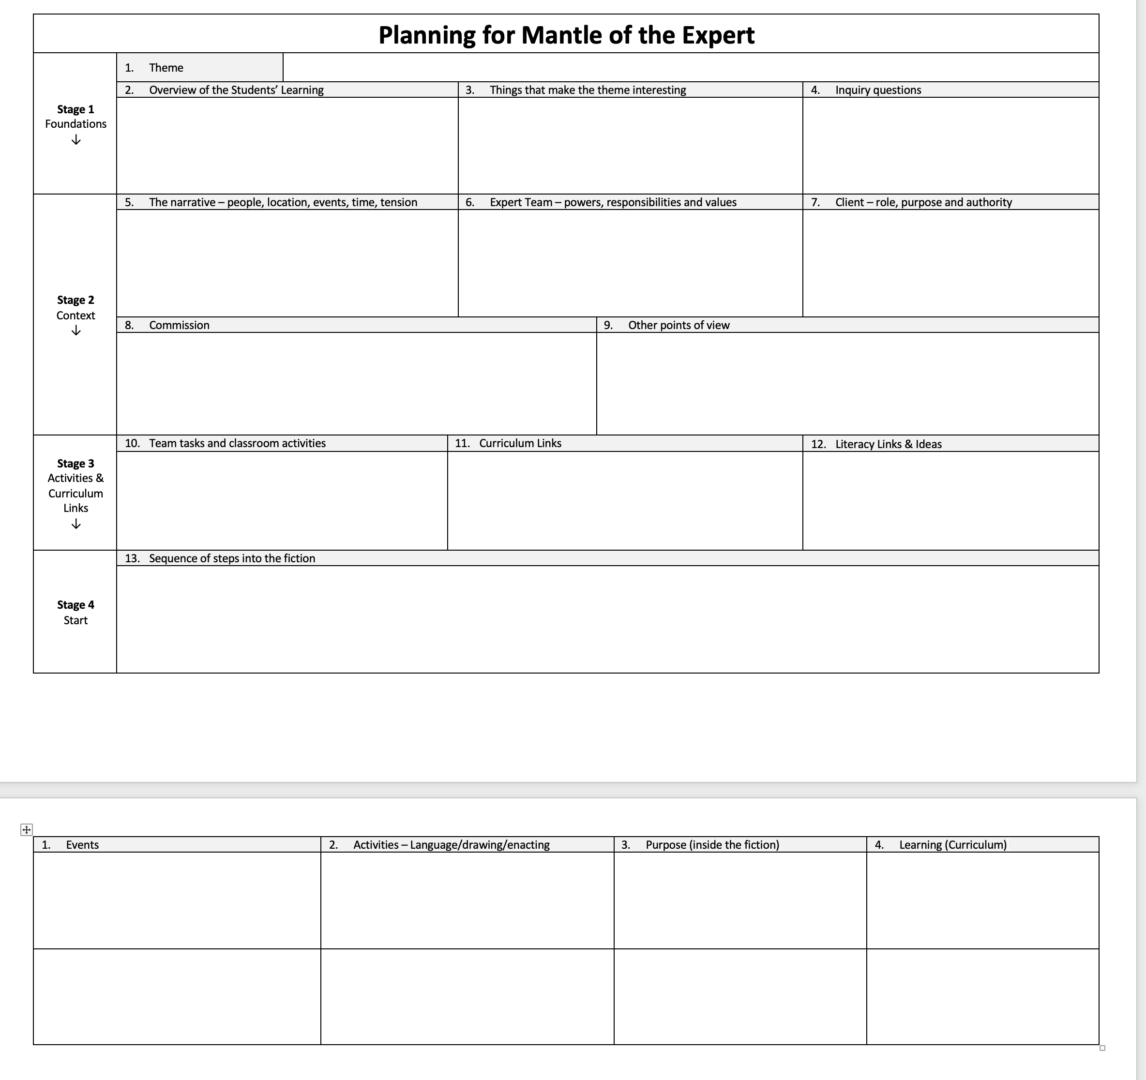 Planning for Mantle of the Expert